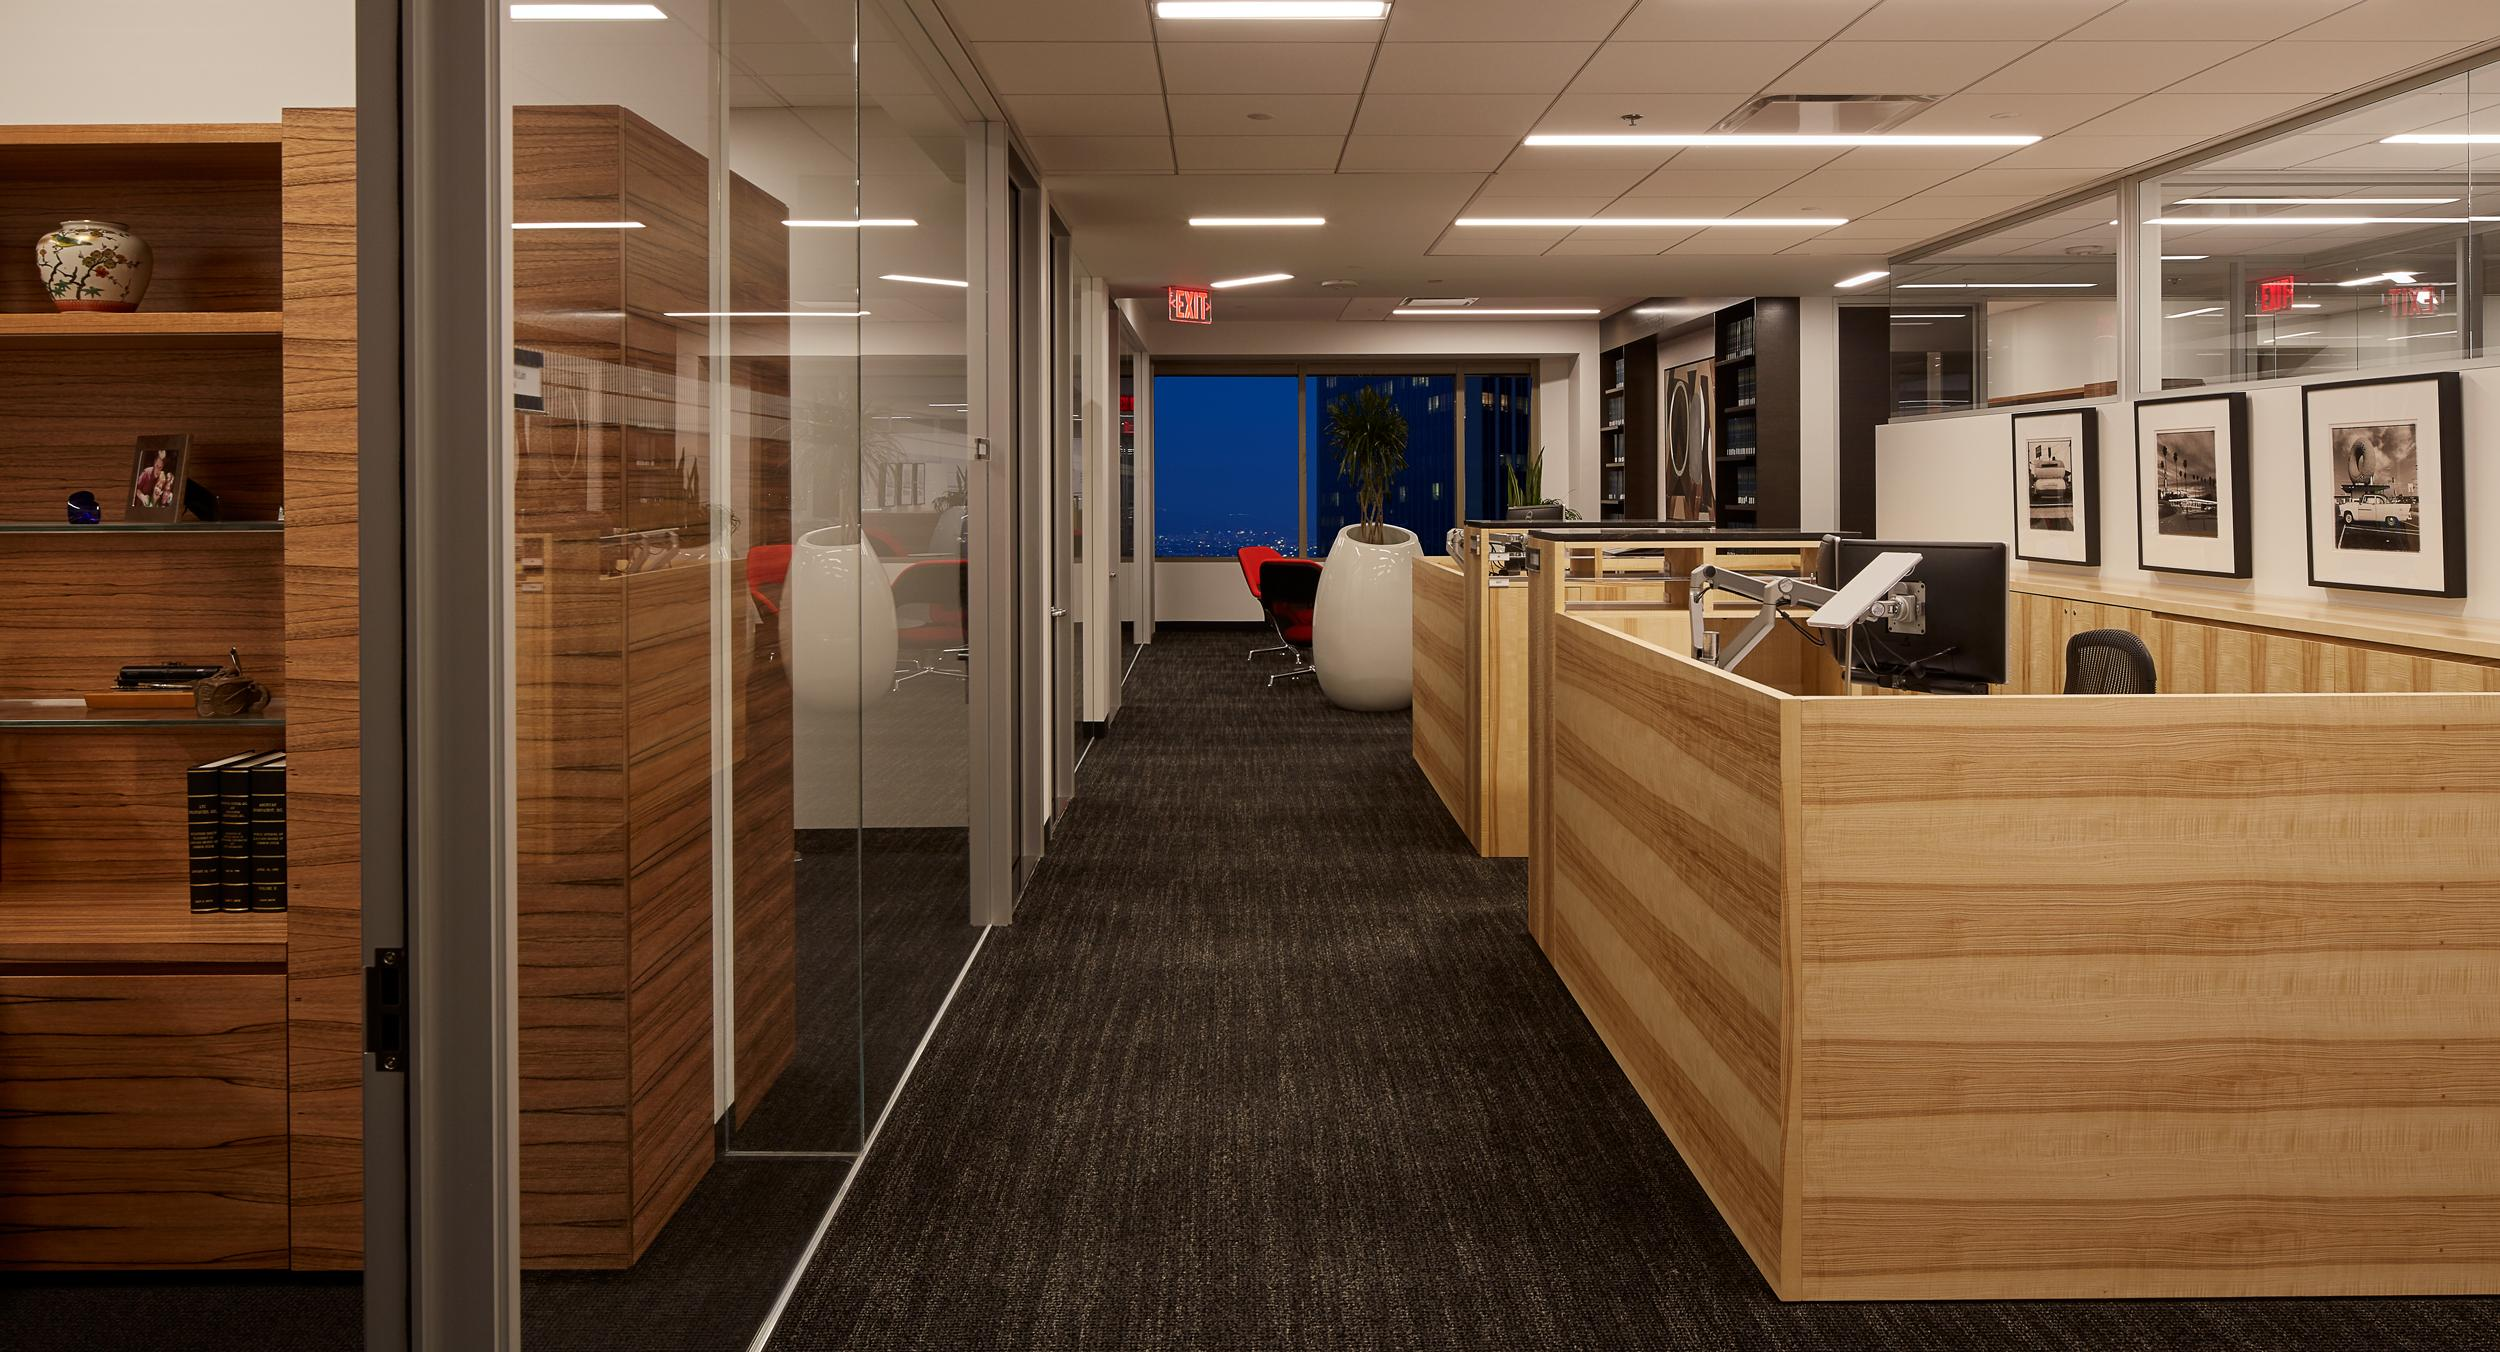 Private and open office furniture showcases beautifully-matched Paldao and Olive Ash veneers.